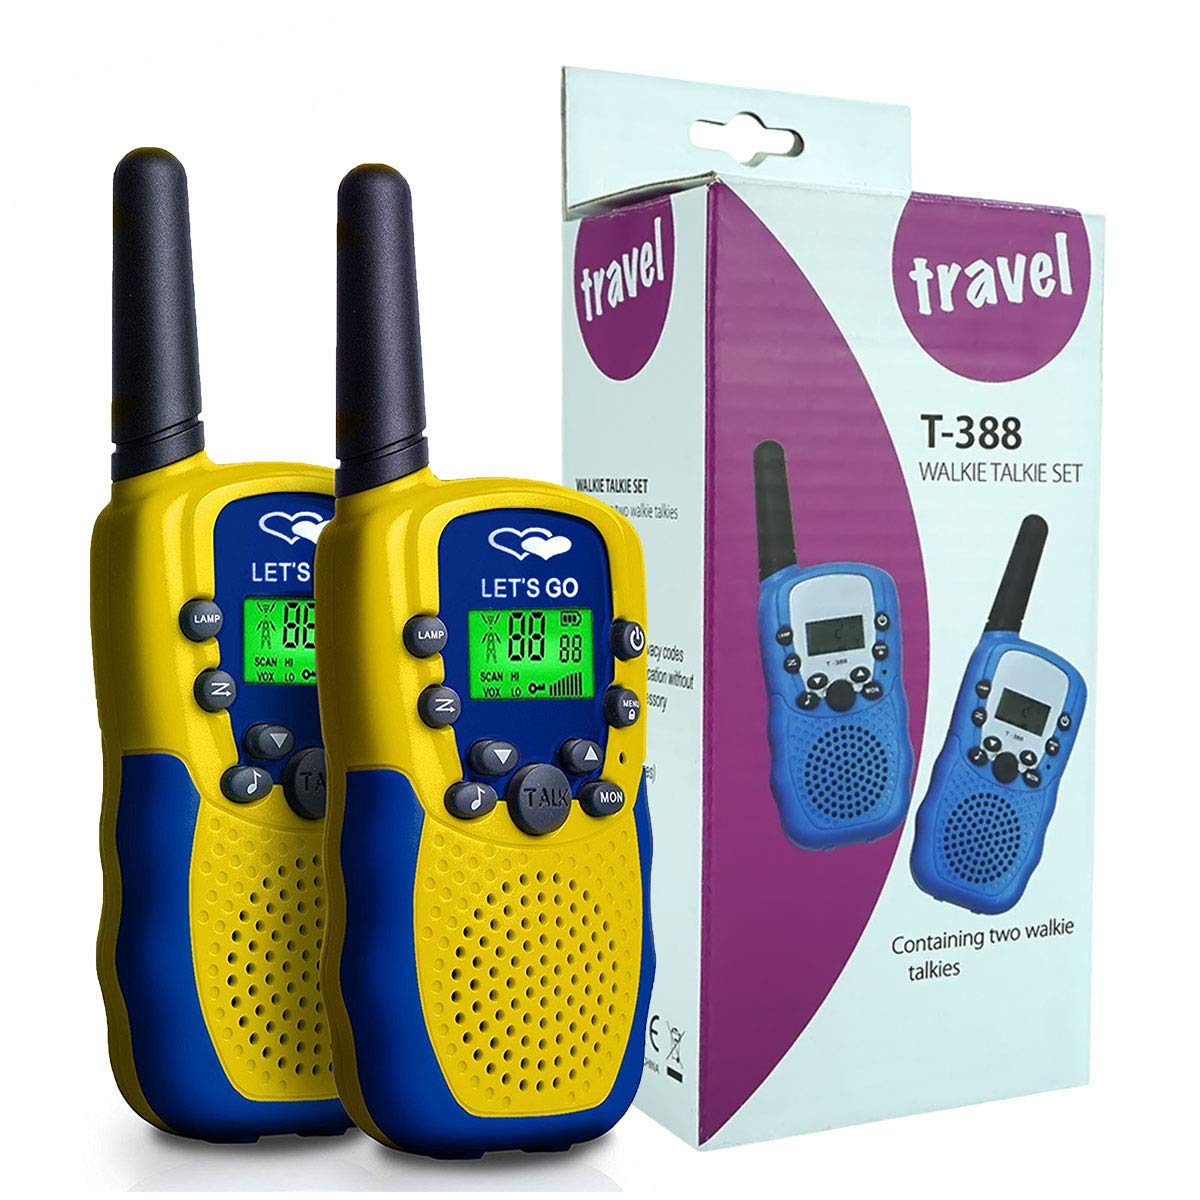 Easony Outdoor Toys for 3-12 Year Old Boys, Long Range Walkie Talkies 3-12 Year Old Girl Hunting Toys 3-12 Year Old Girl Birthday Presents Gifts for 3-12 Year Old Boys Yellow Blue ESUSAD09